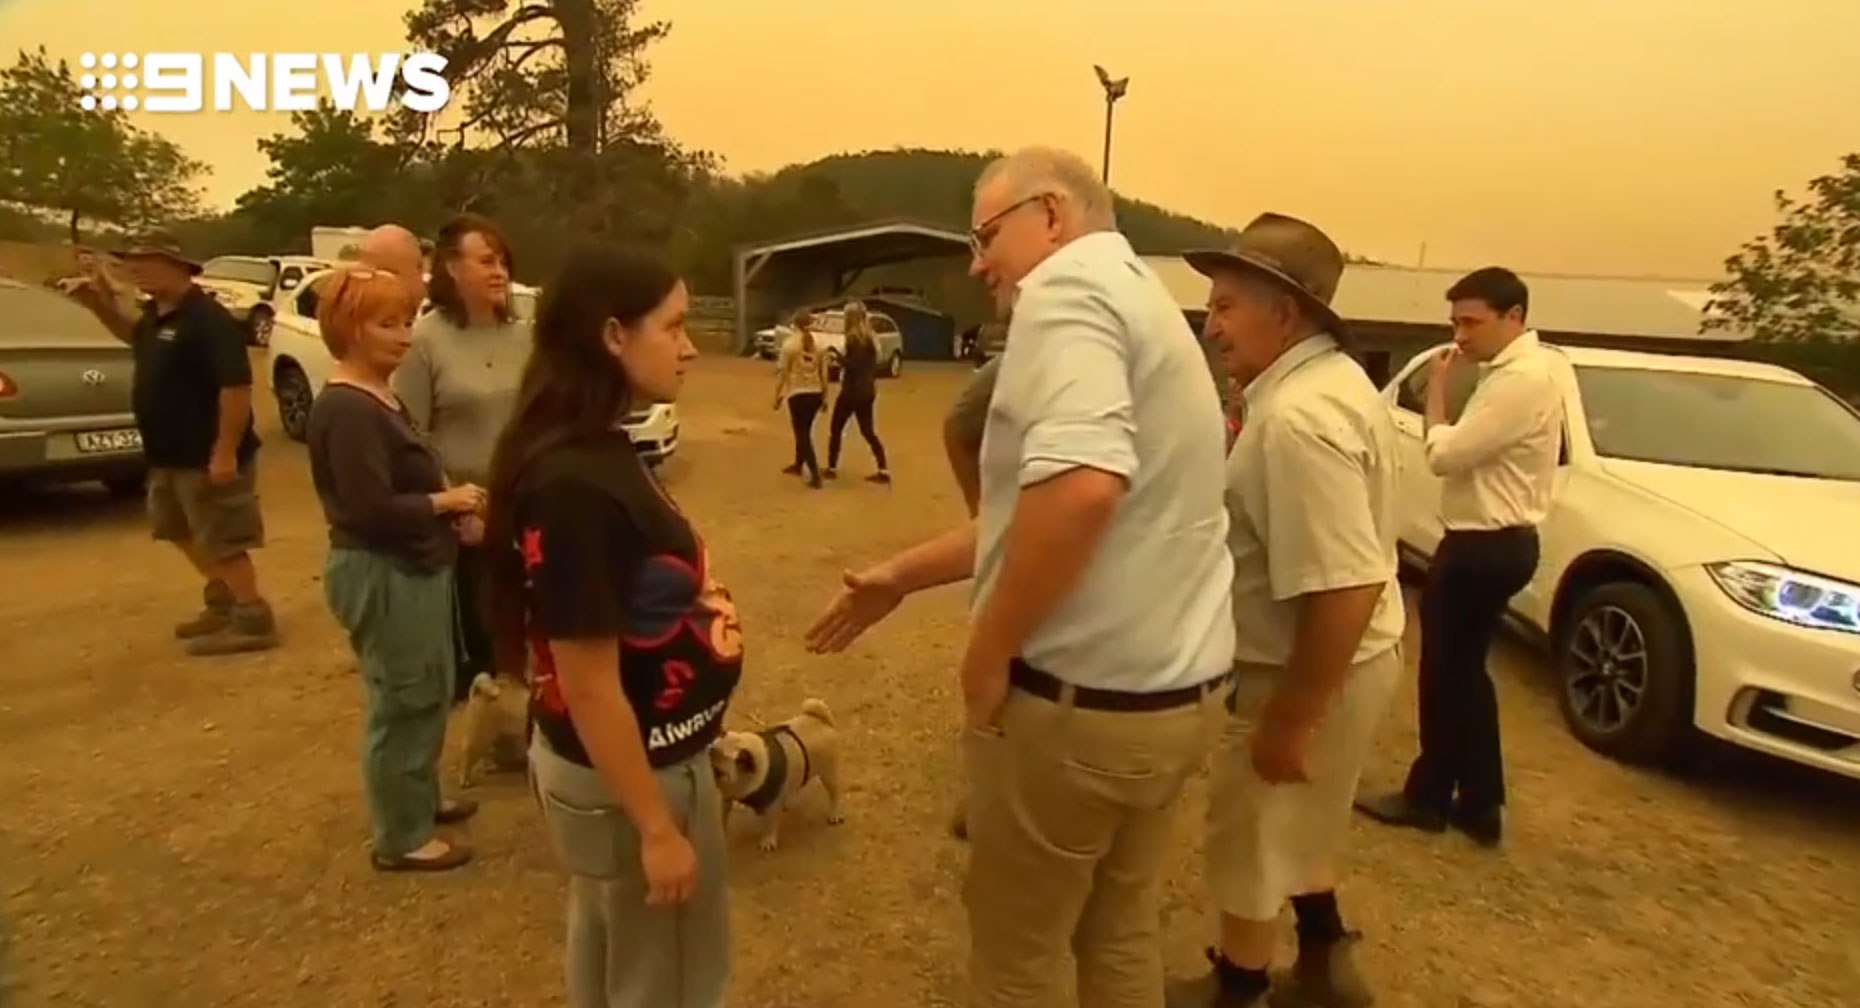 Aussie PM Scott Morrison was heckled and retreated to his limo after residents refused to shake his hand in fire-hit Cobargo